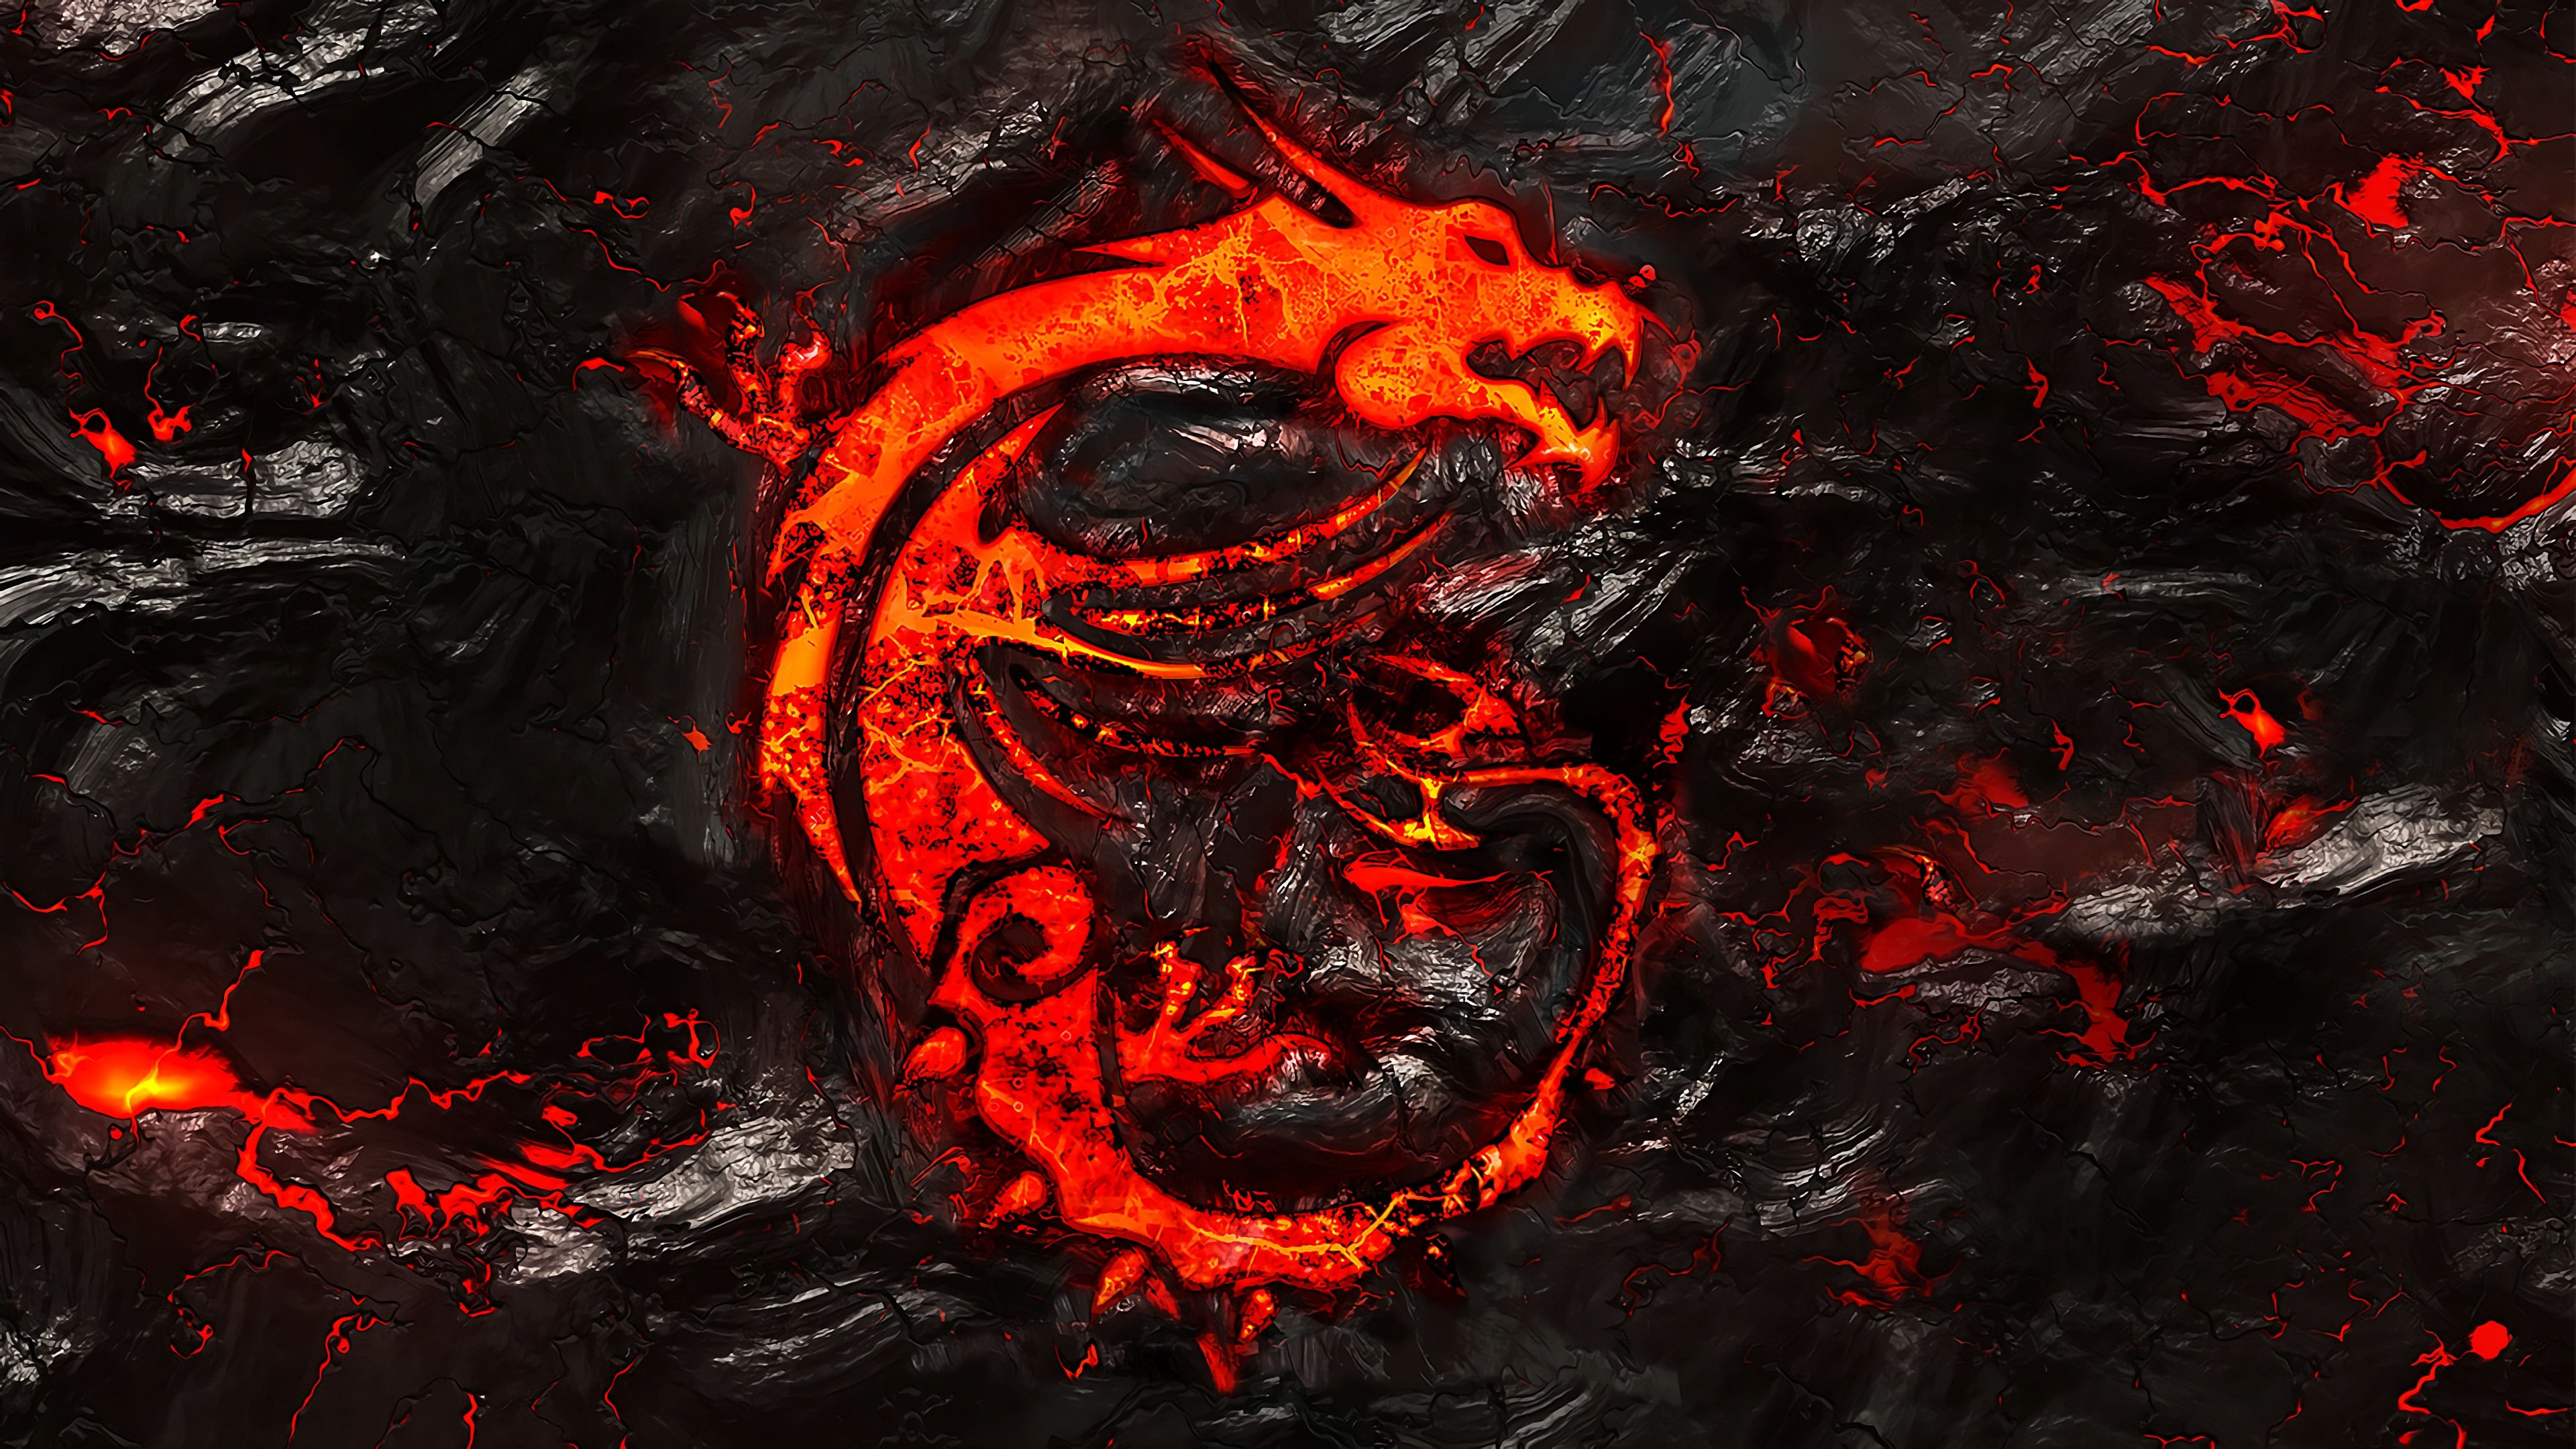 Descargar Mejores Fondos 4k 2019: MSI Dragon Logo Burning Lava Background 4k Wallpaper